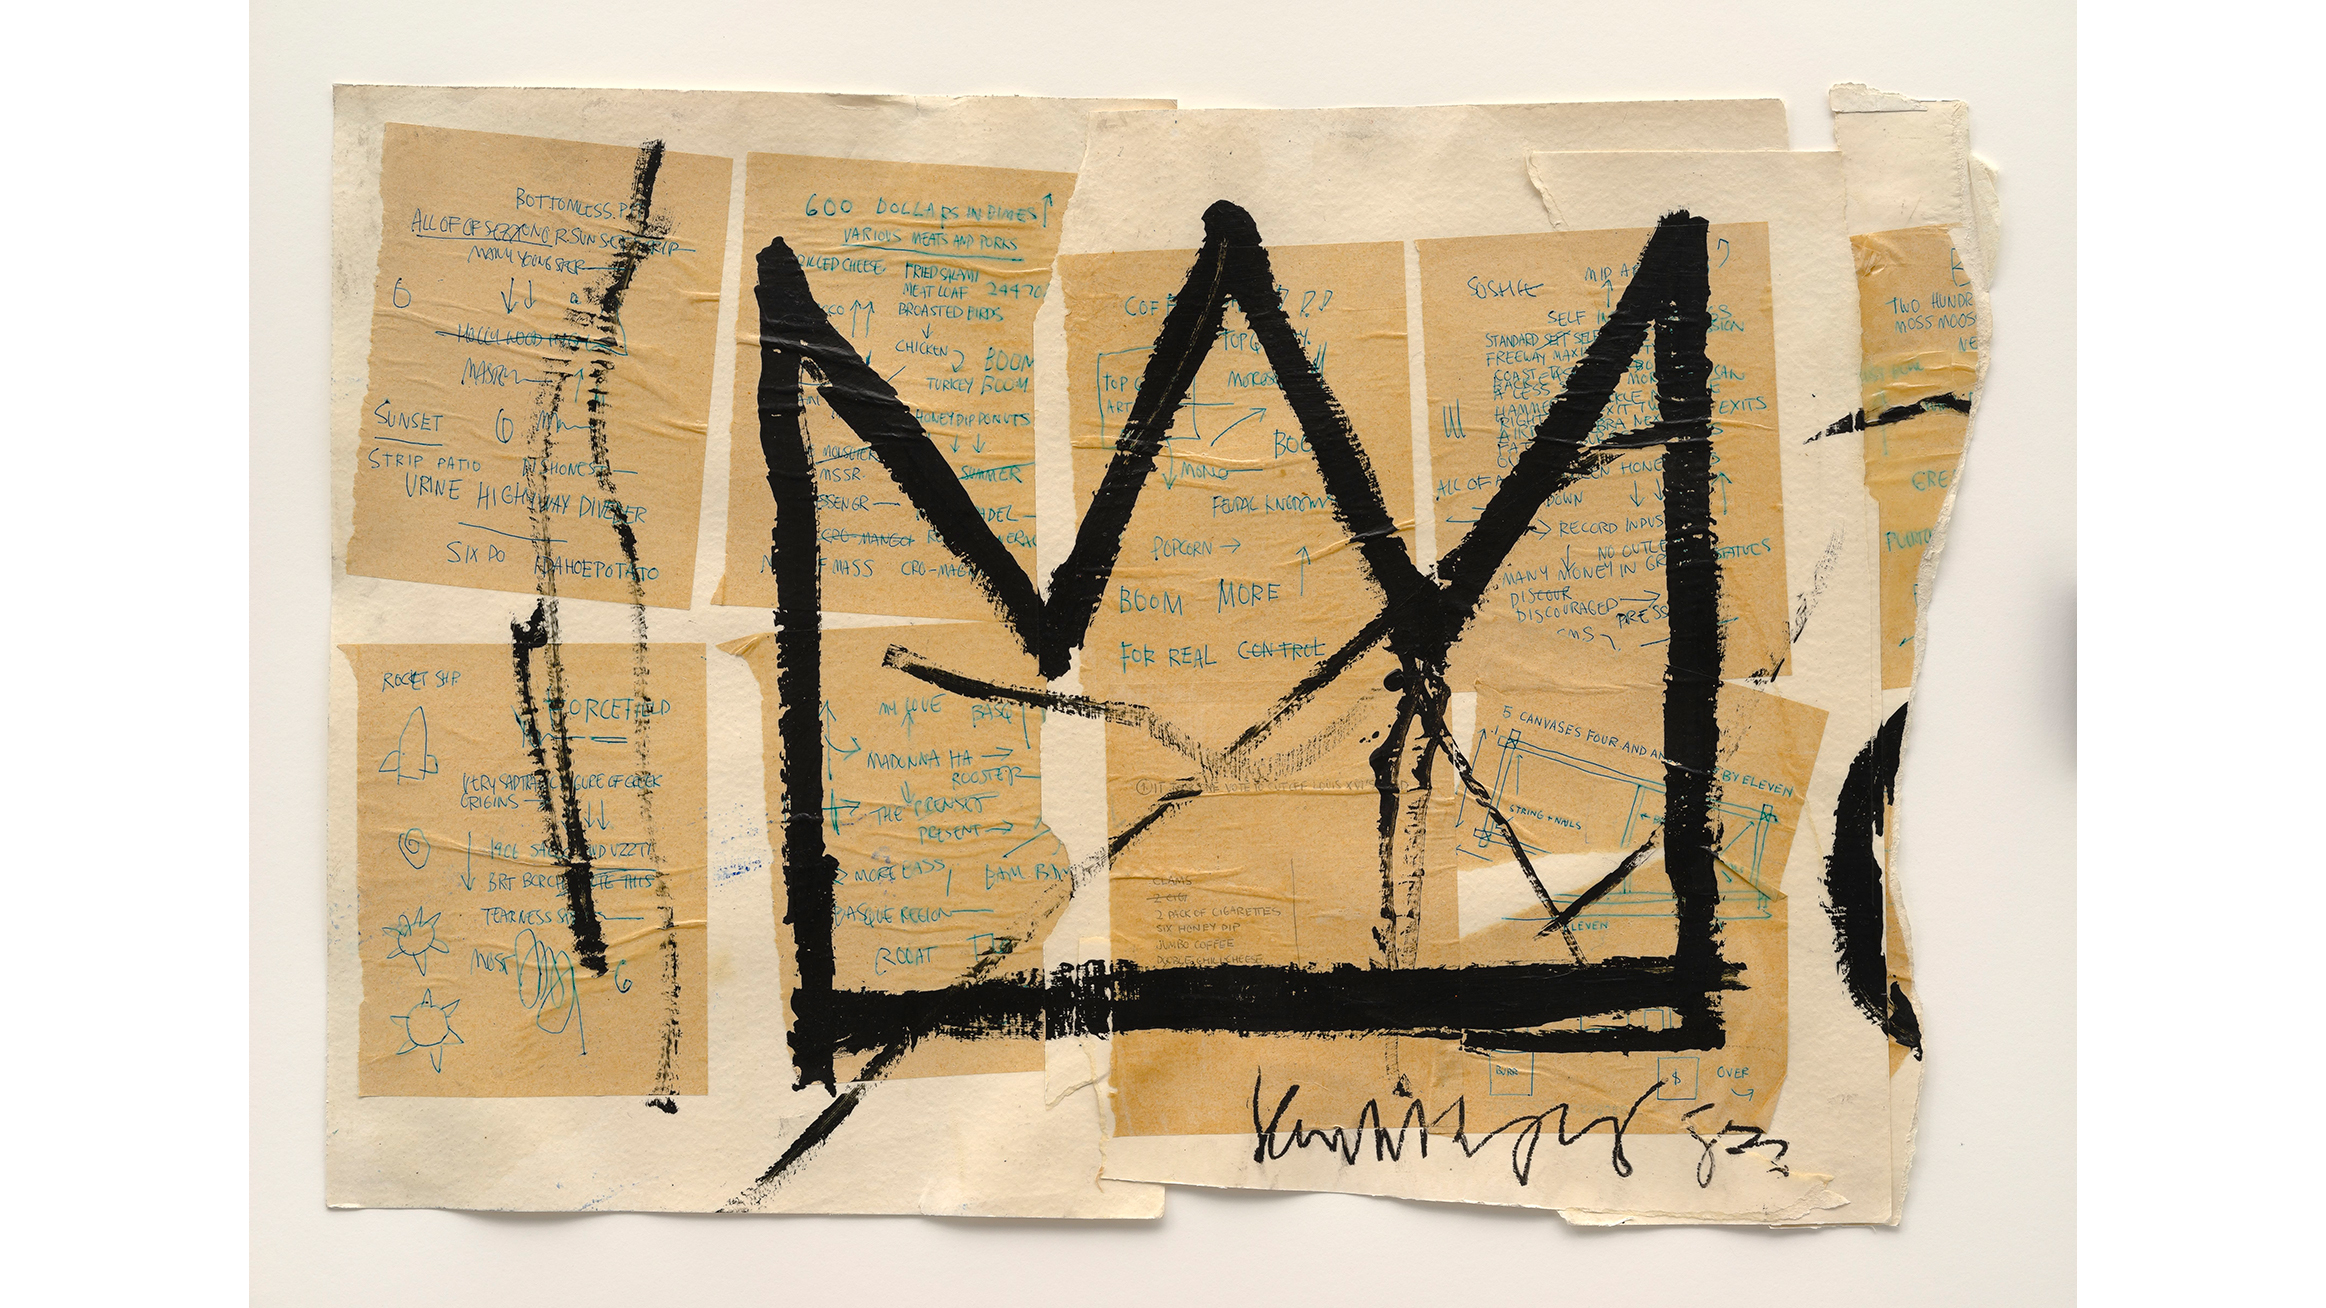 Jean-Michel Basquiat (American, 1960–1988). Untitled(Crown), 1982. Acrylic, ink, and paper collage on paper, 20 x 29 in. (50.8 x 73.66 cm).